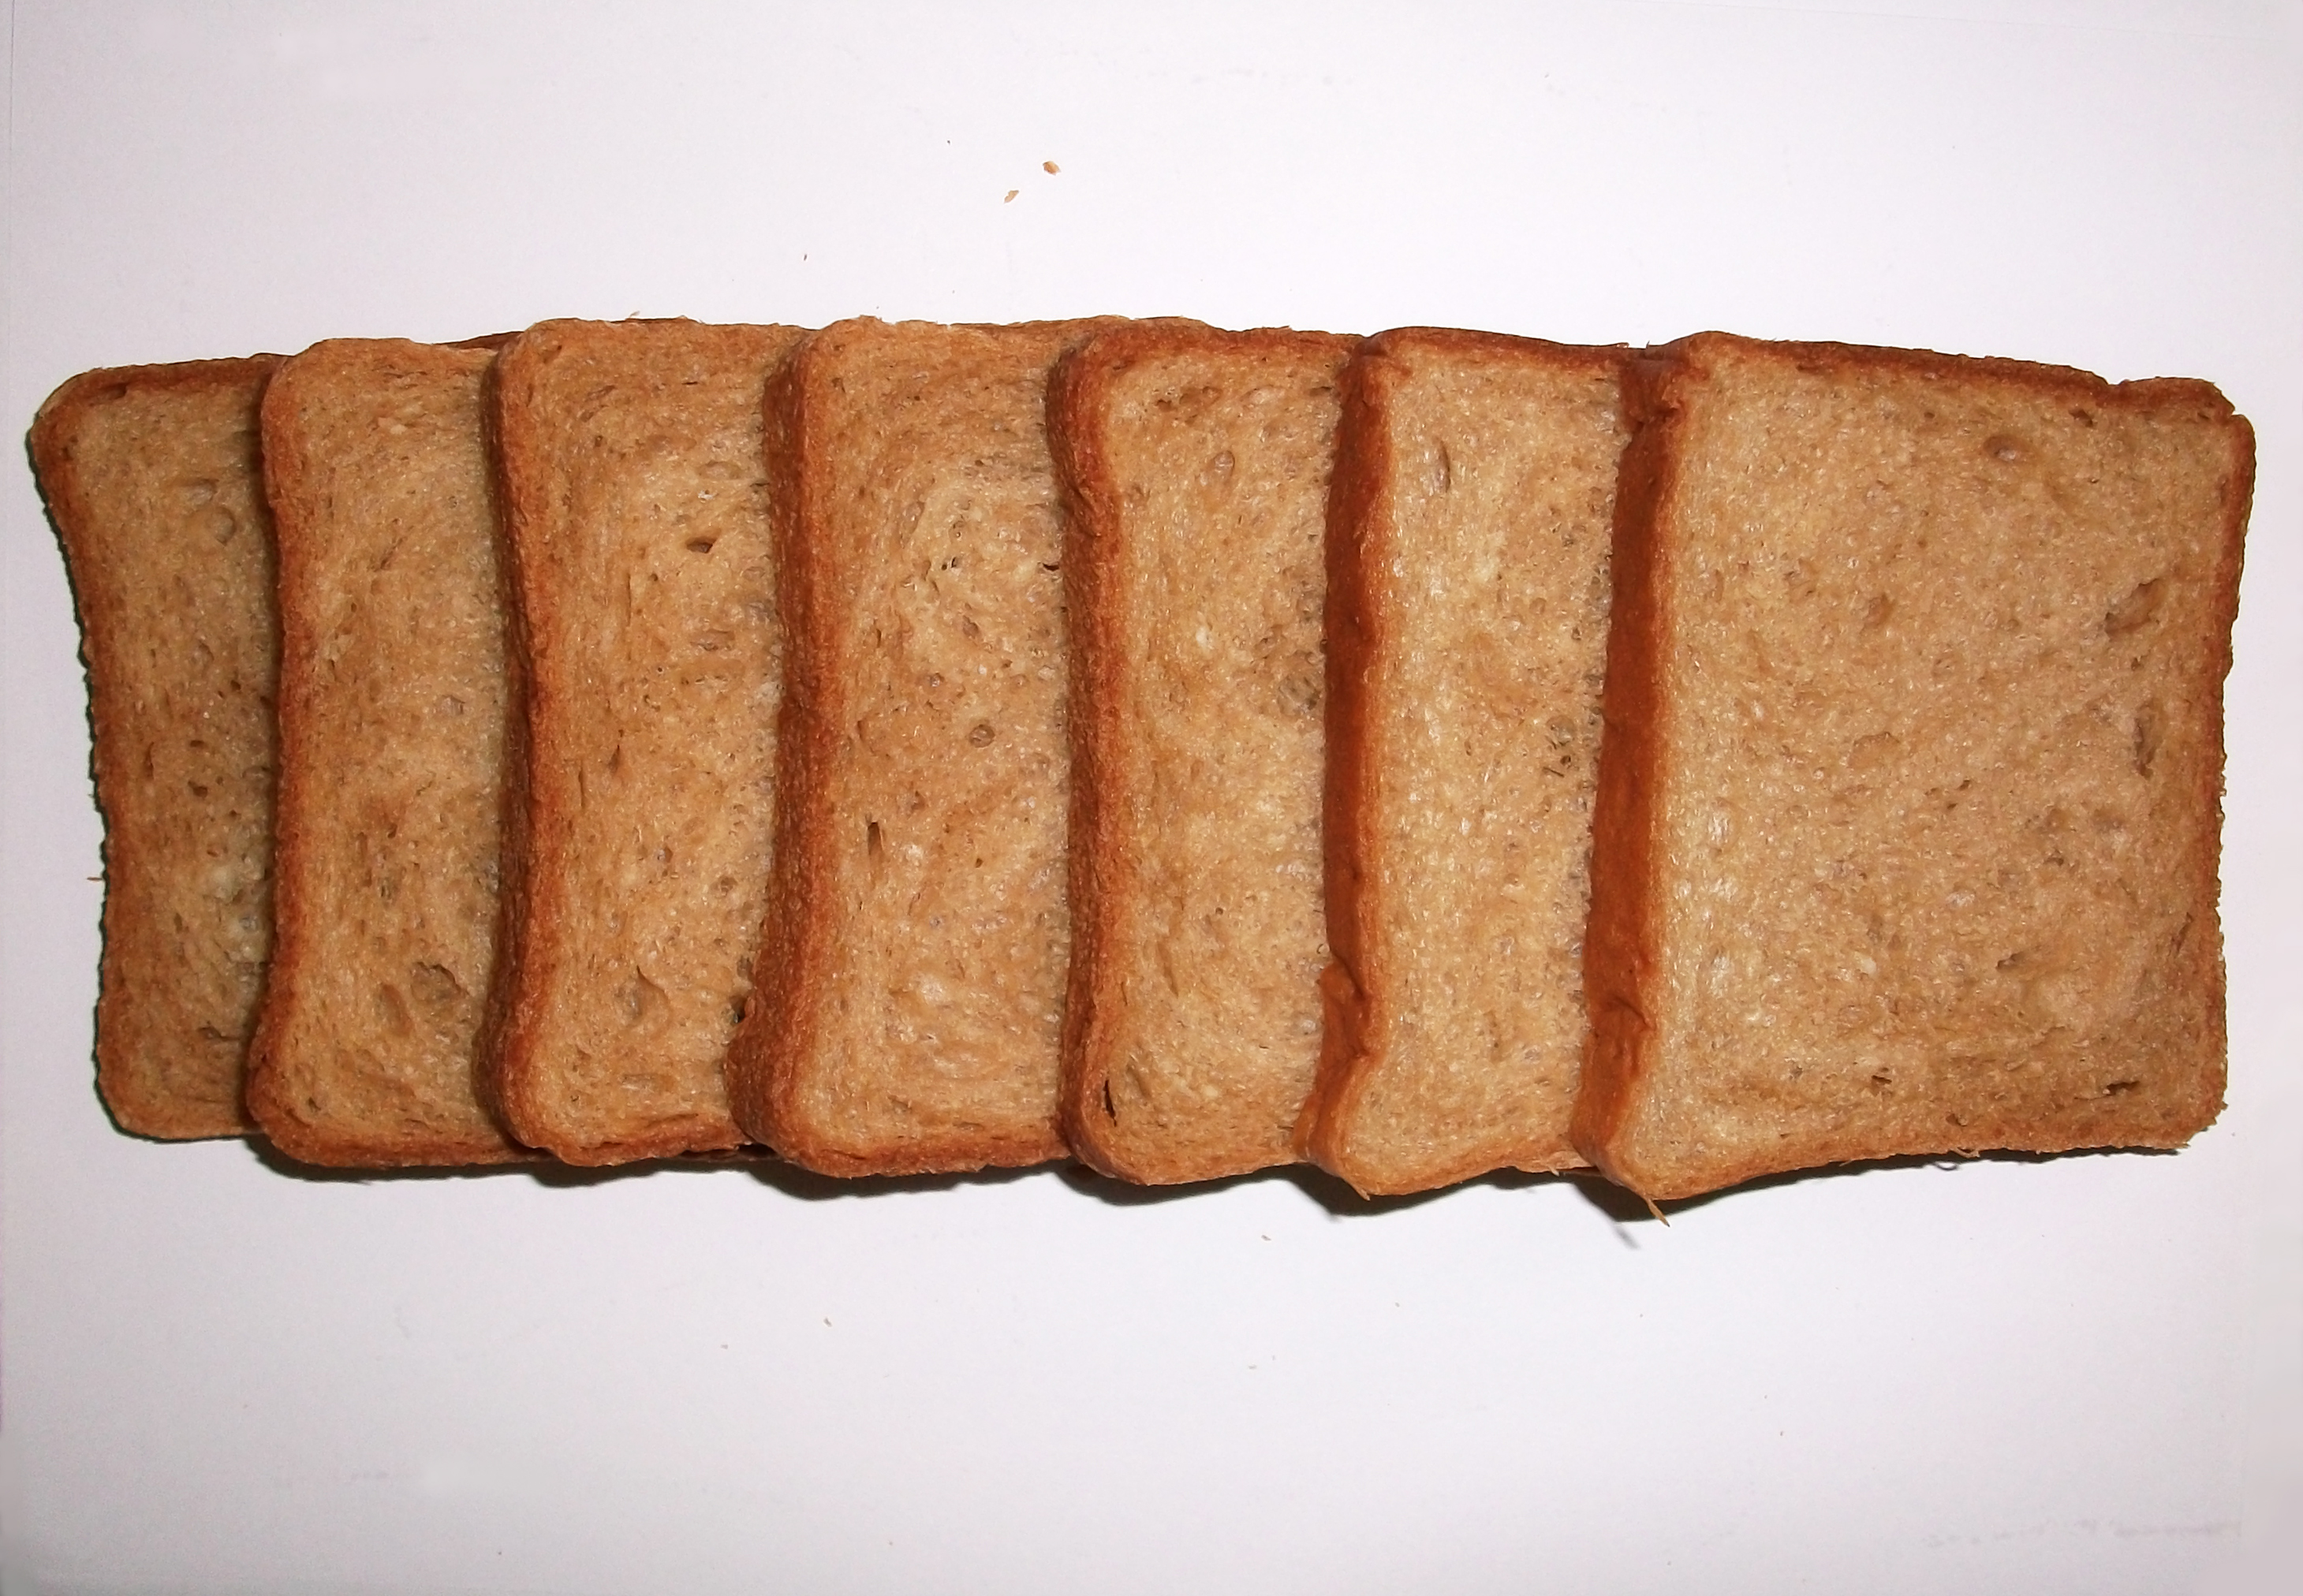 """Brown Bread Slices In A Row"""